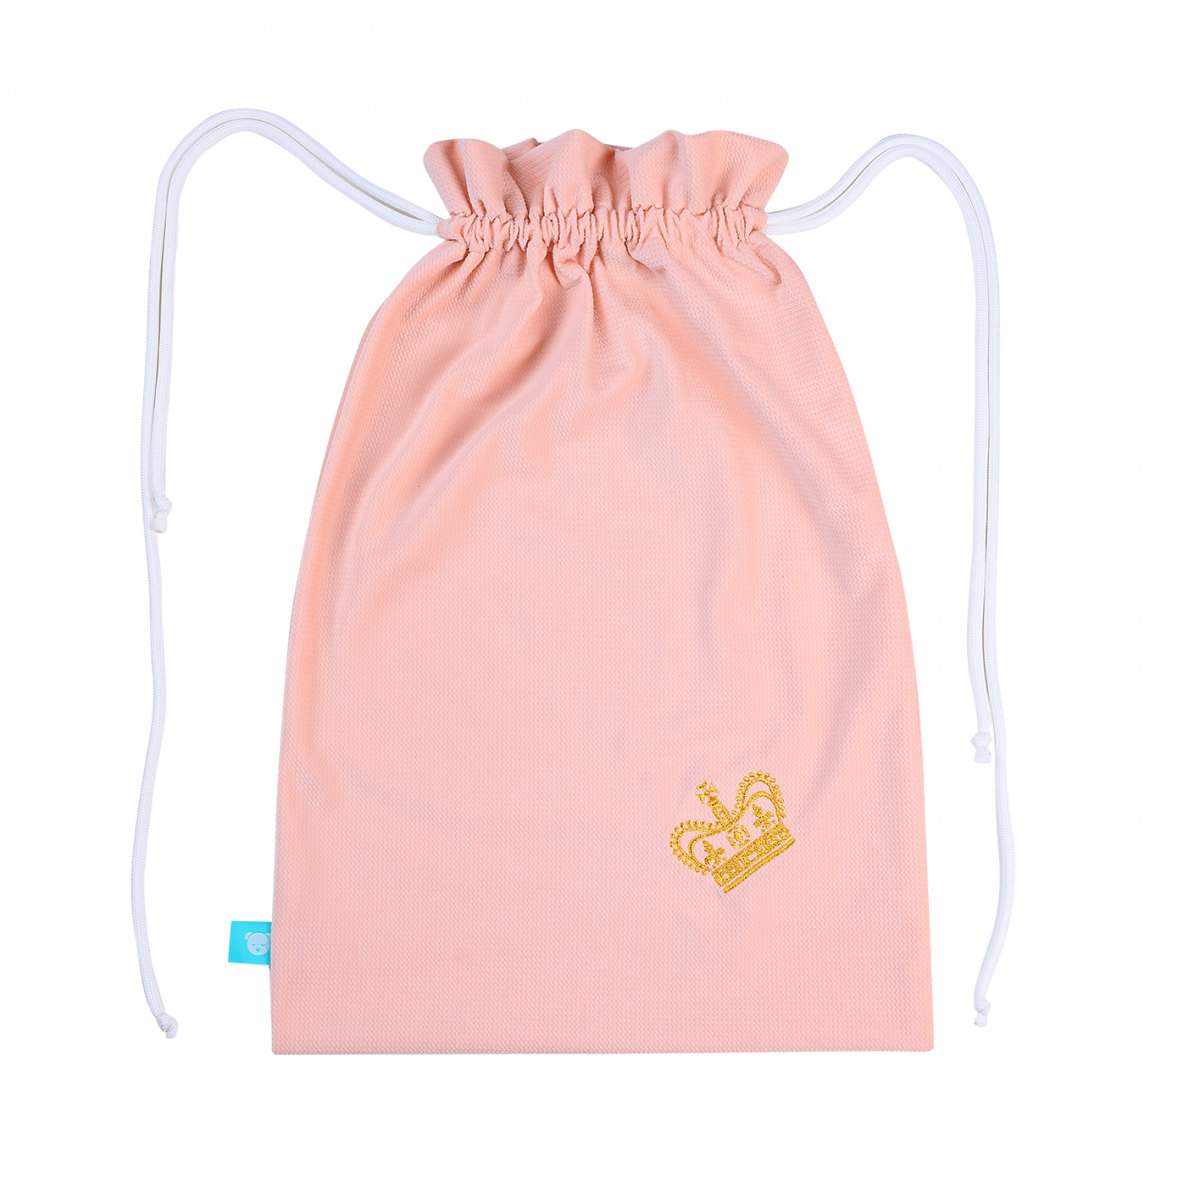 ROYAL LIMITED EDITION SOPHIE - Alvásérzékelő + takaró UNI pink + royal bag